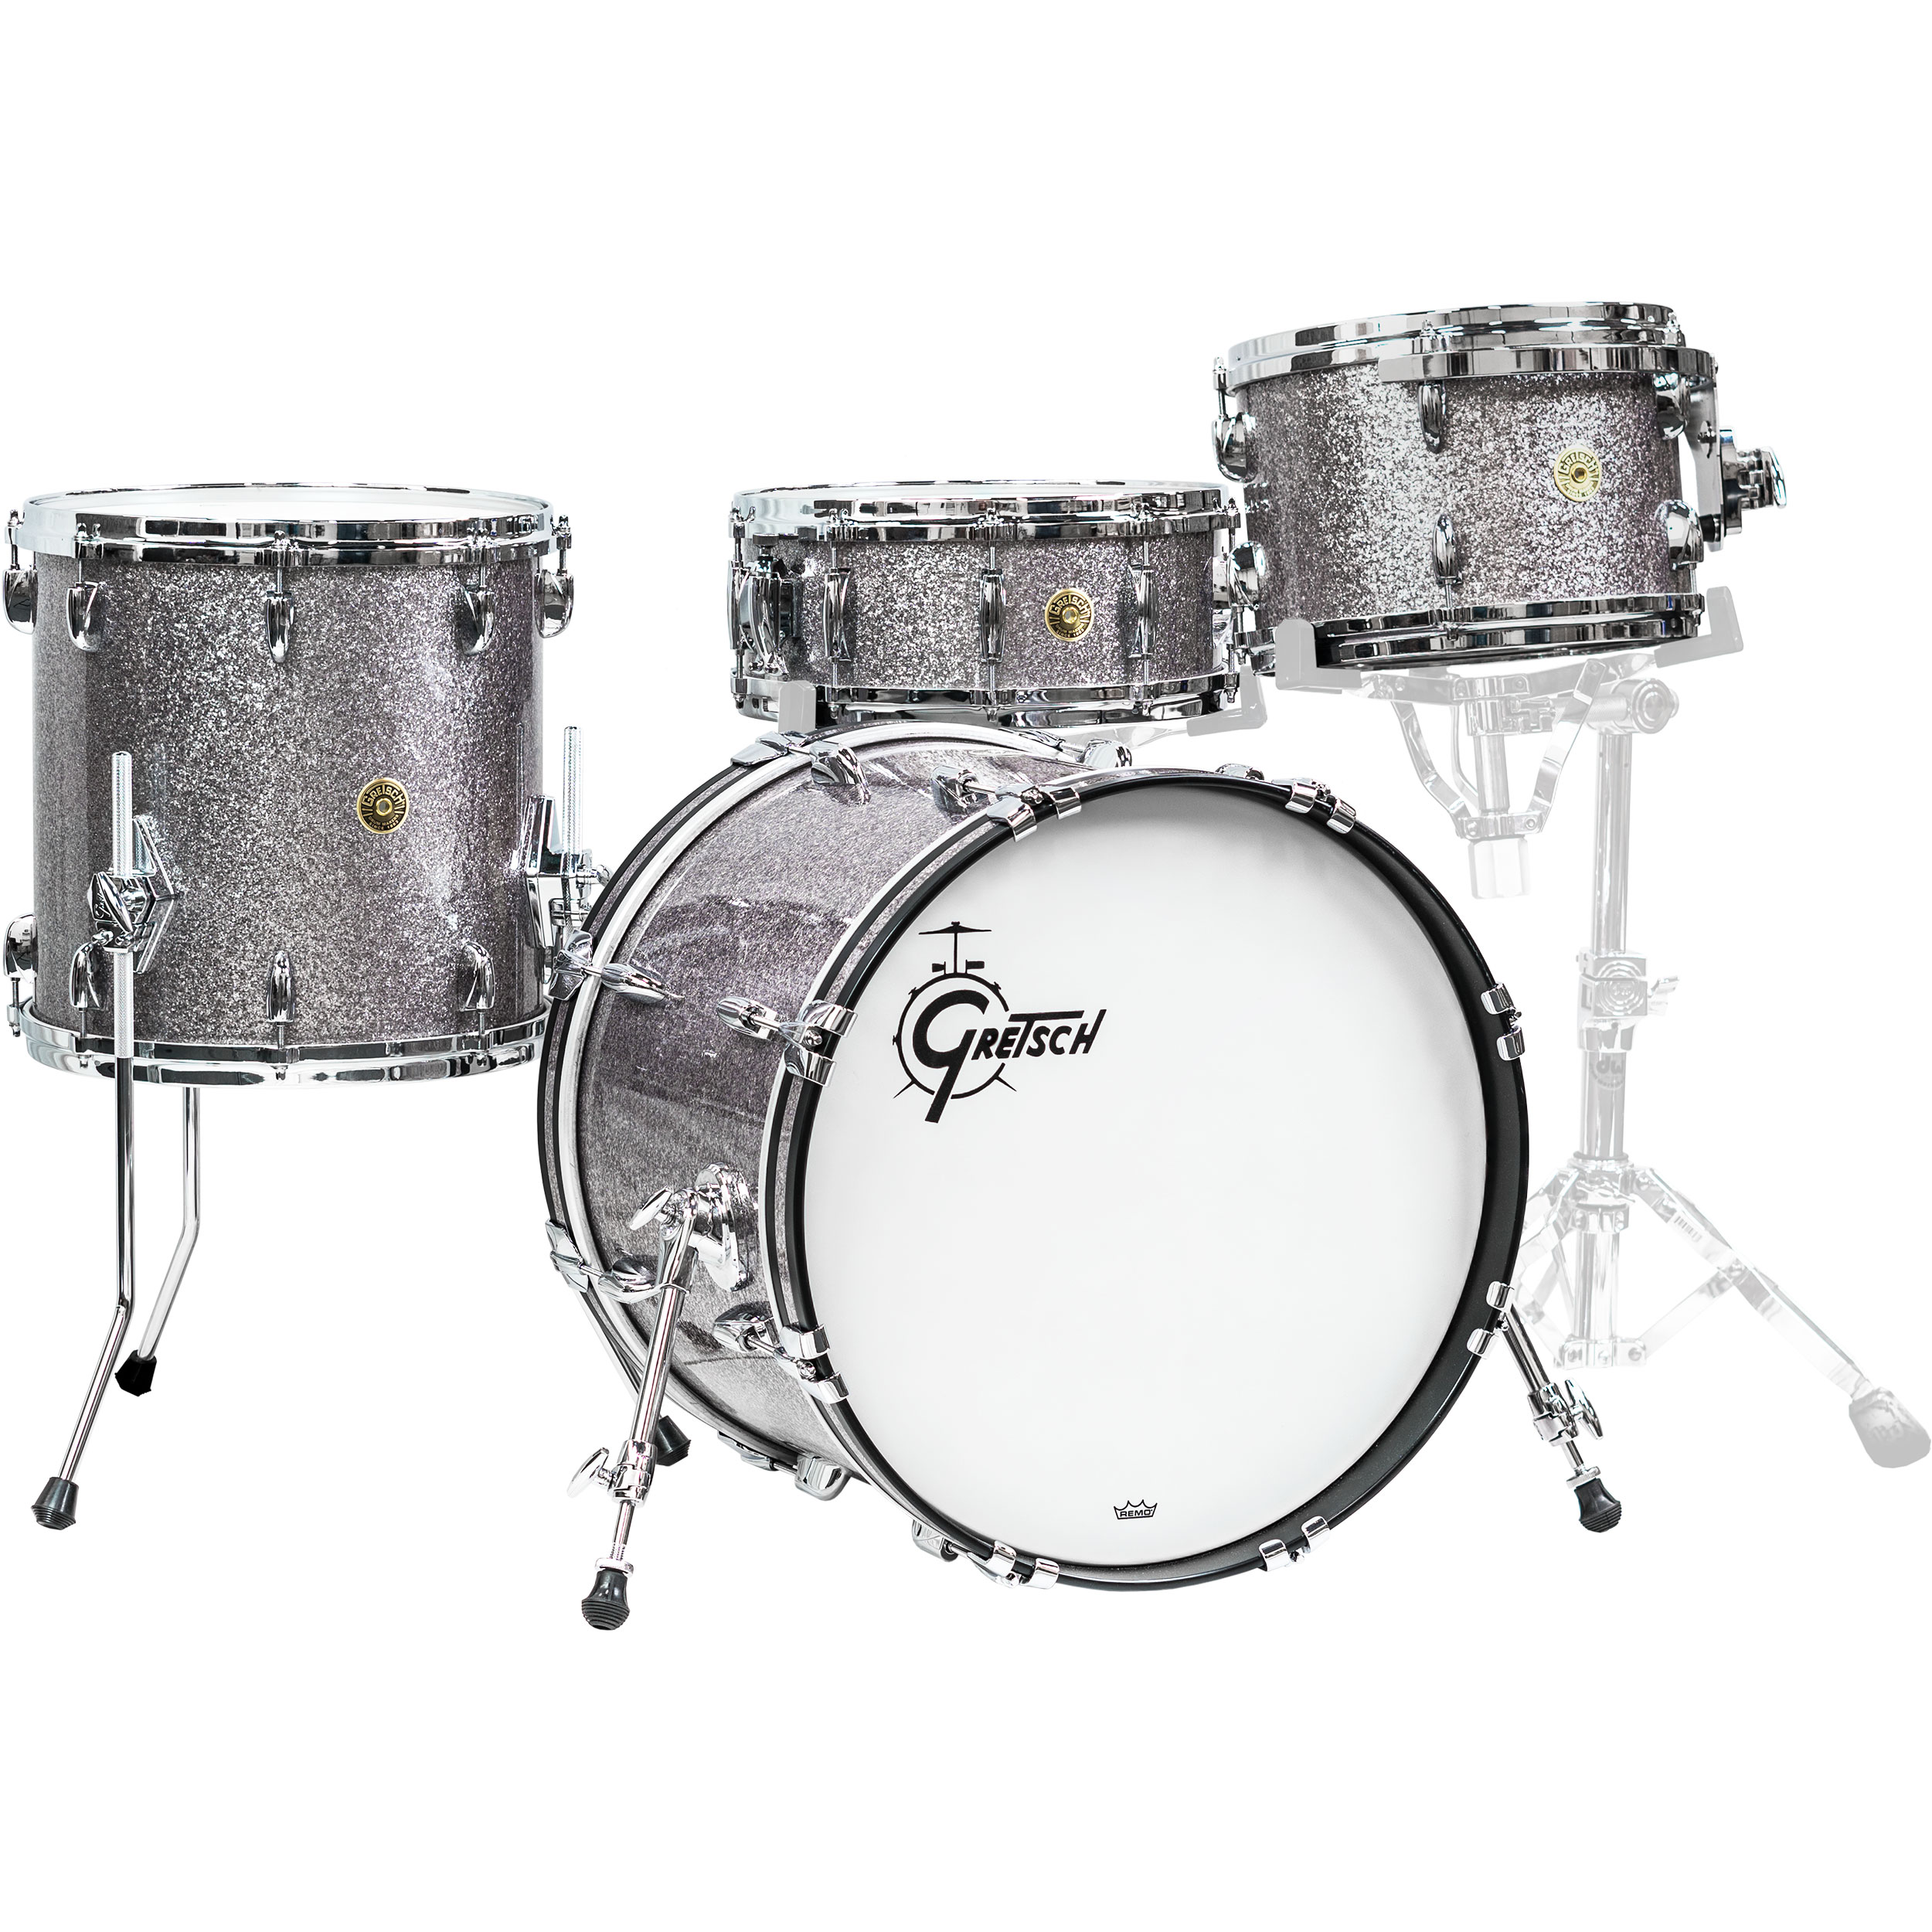 "Gretsch USA Custom 4-Piece Drum Set Shell Pack (20"" Bass, 12/14"" Toms, 14"" Snare) in Pewter Sparkle"